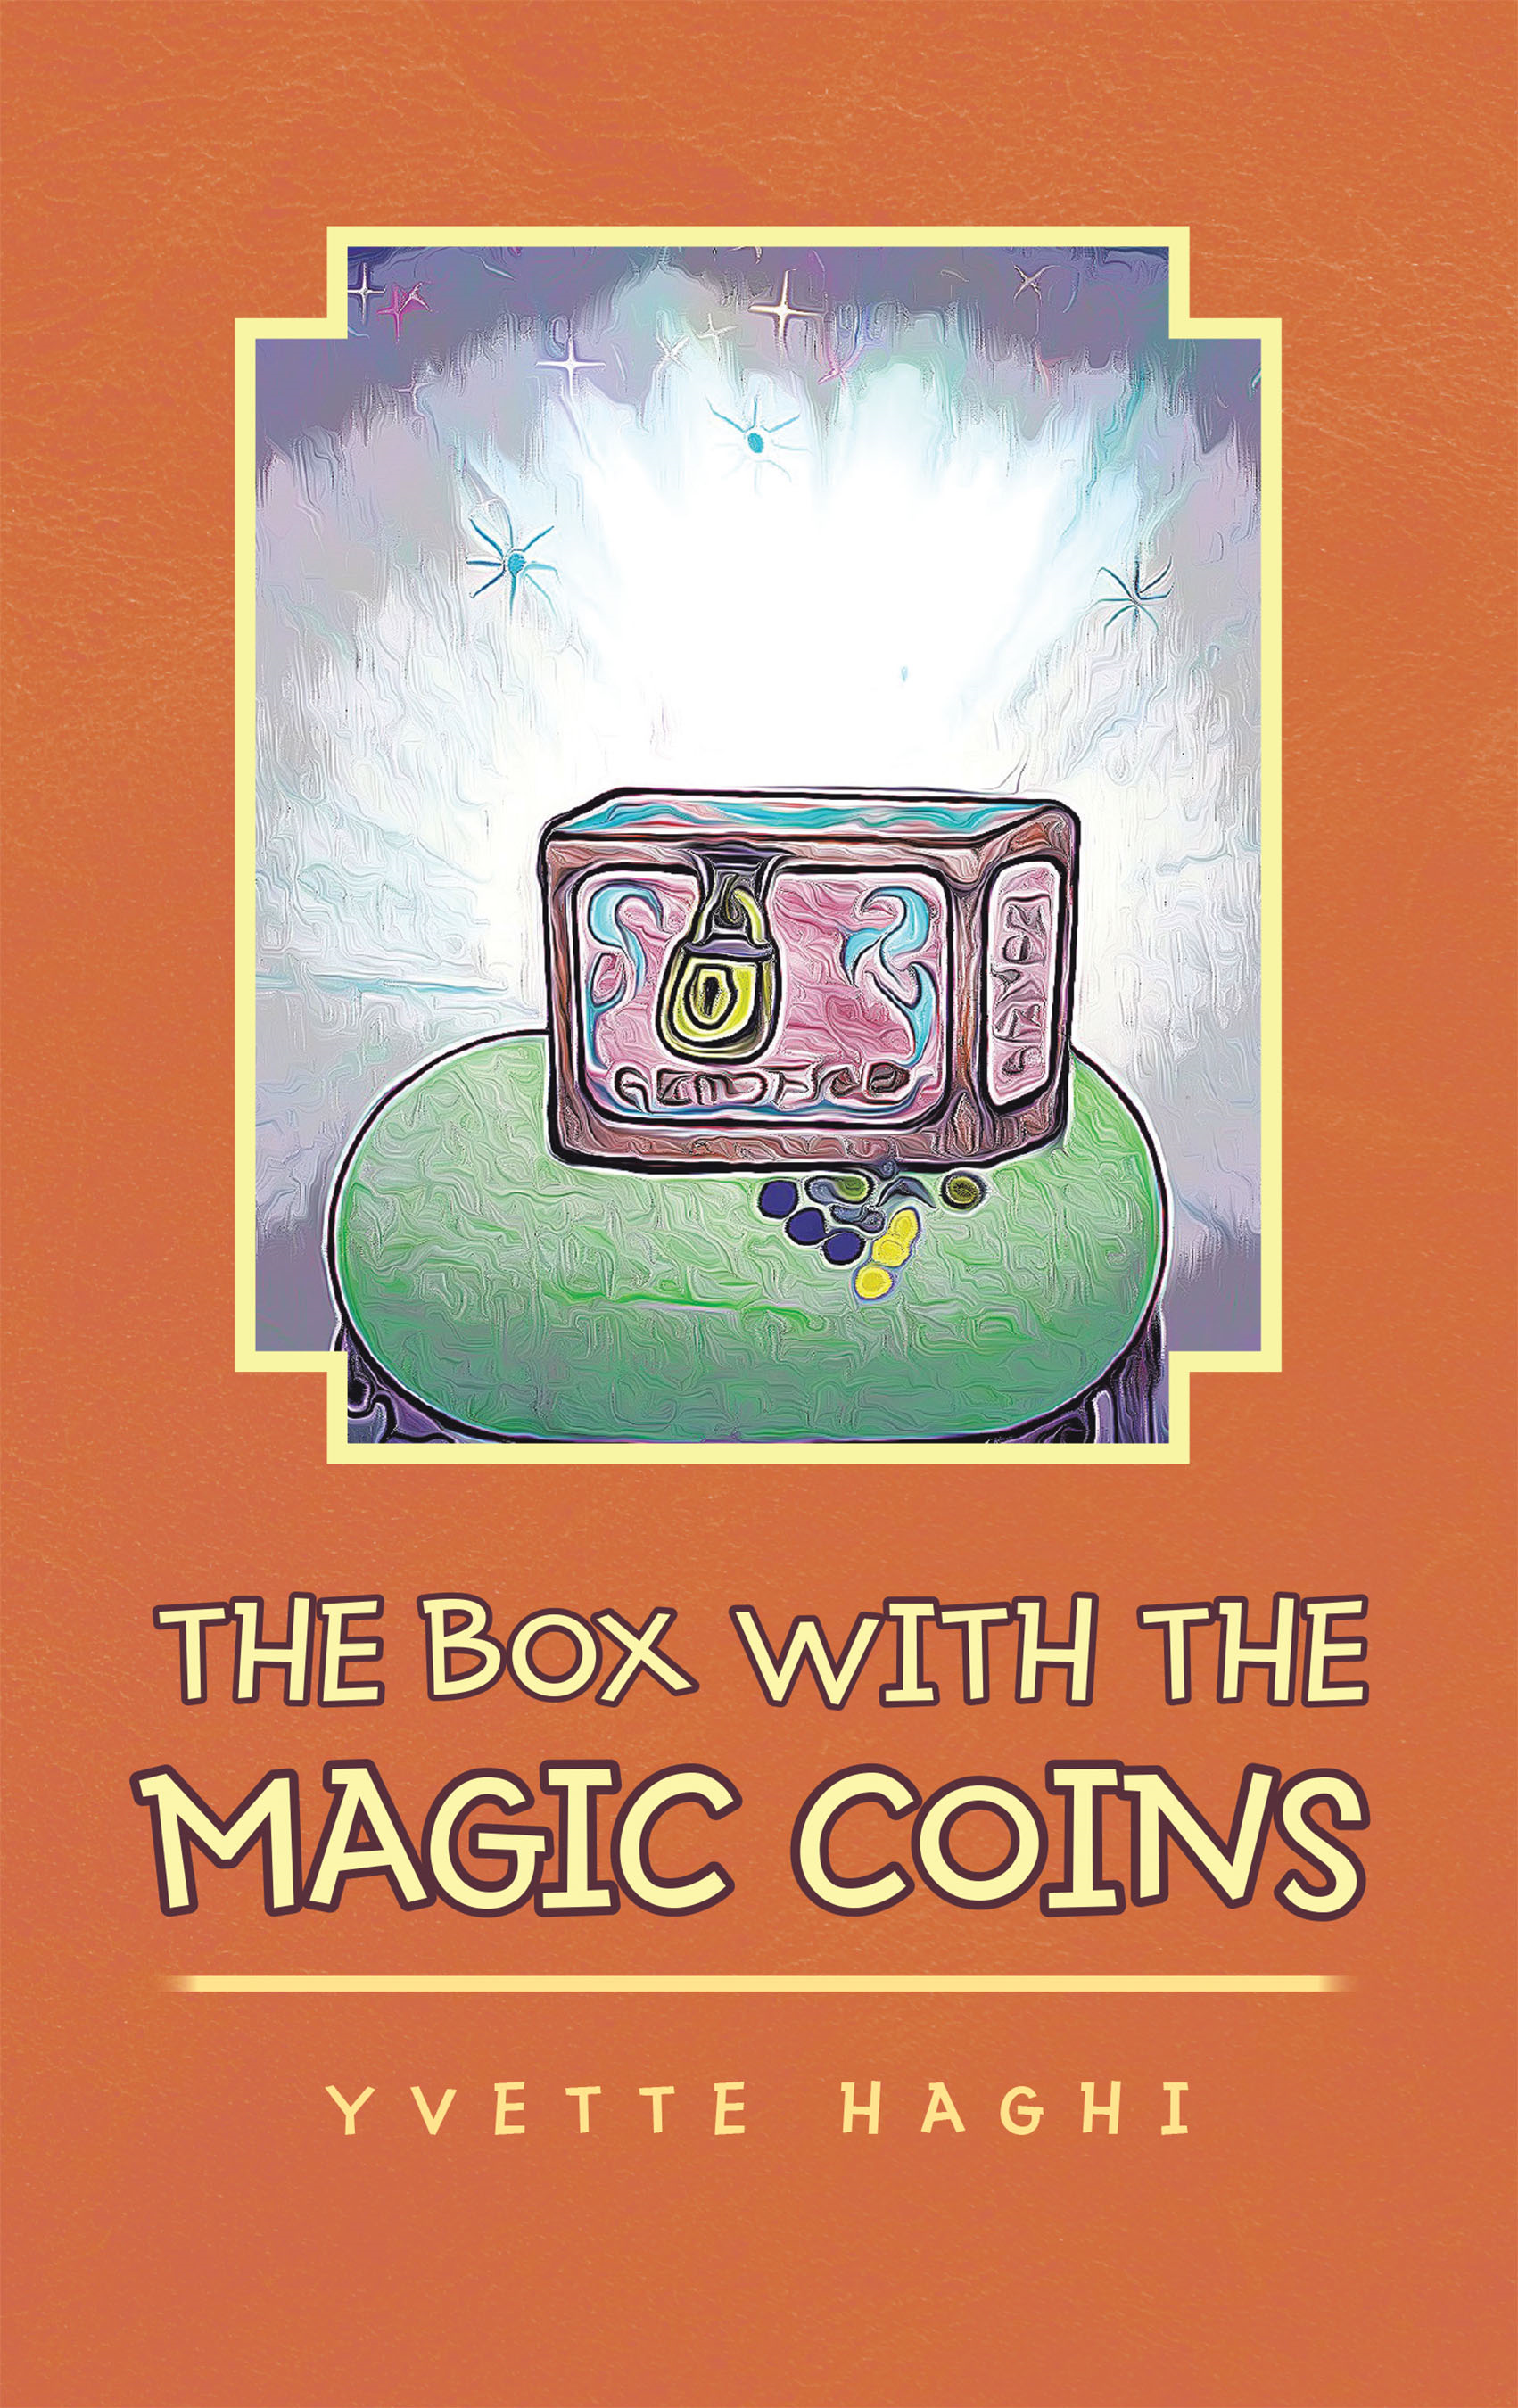 The Box with the Magic Coins